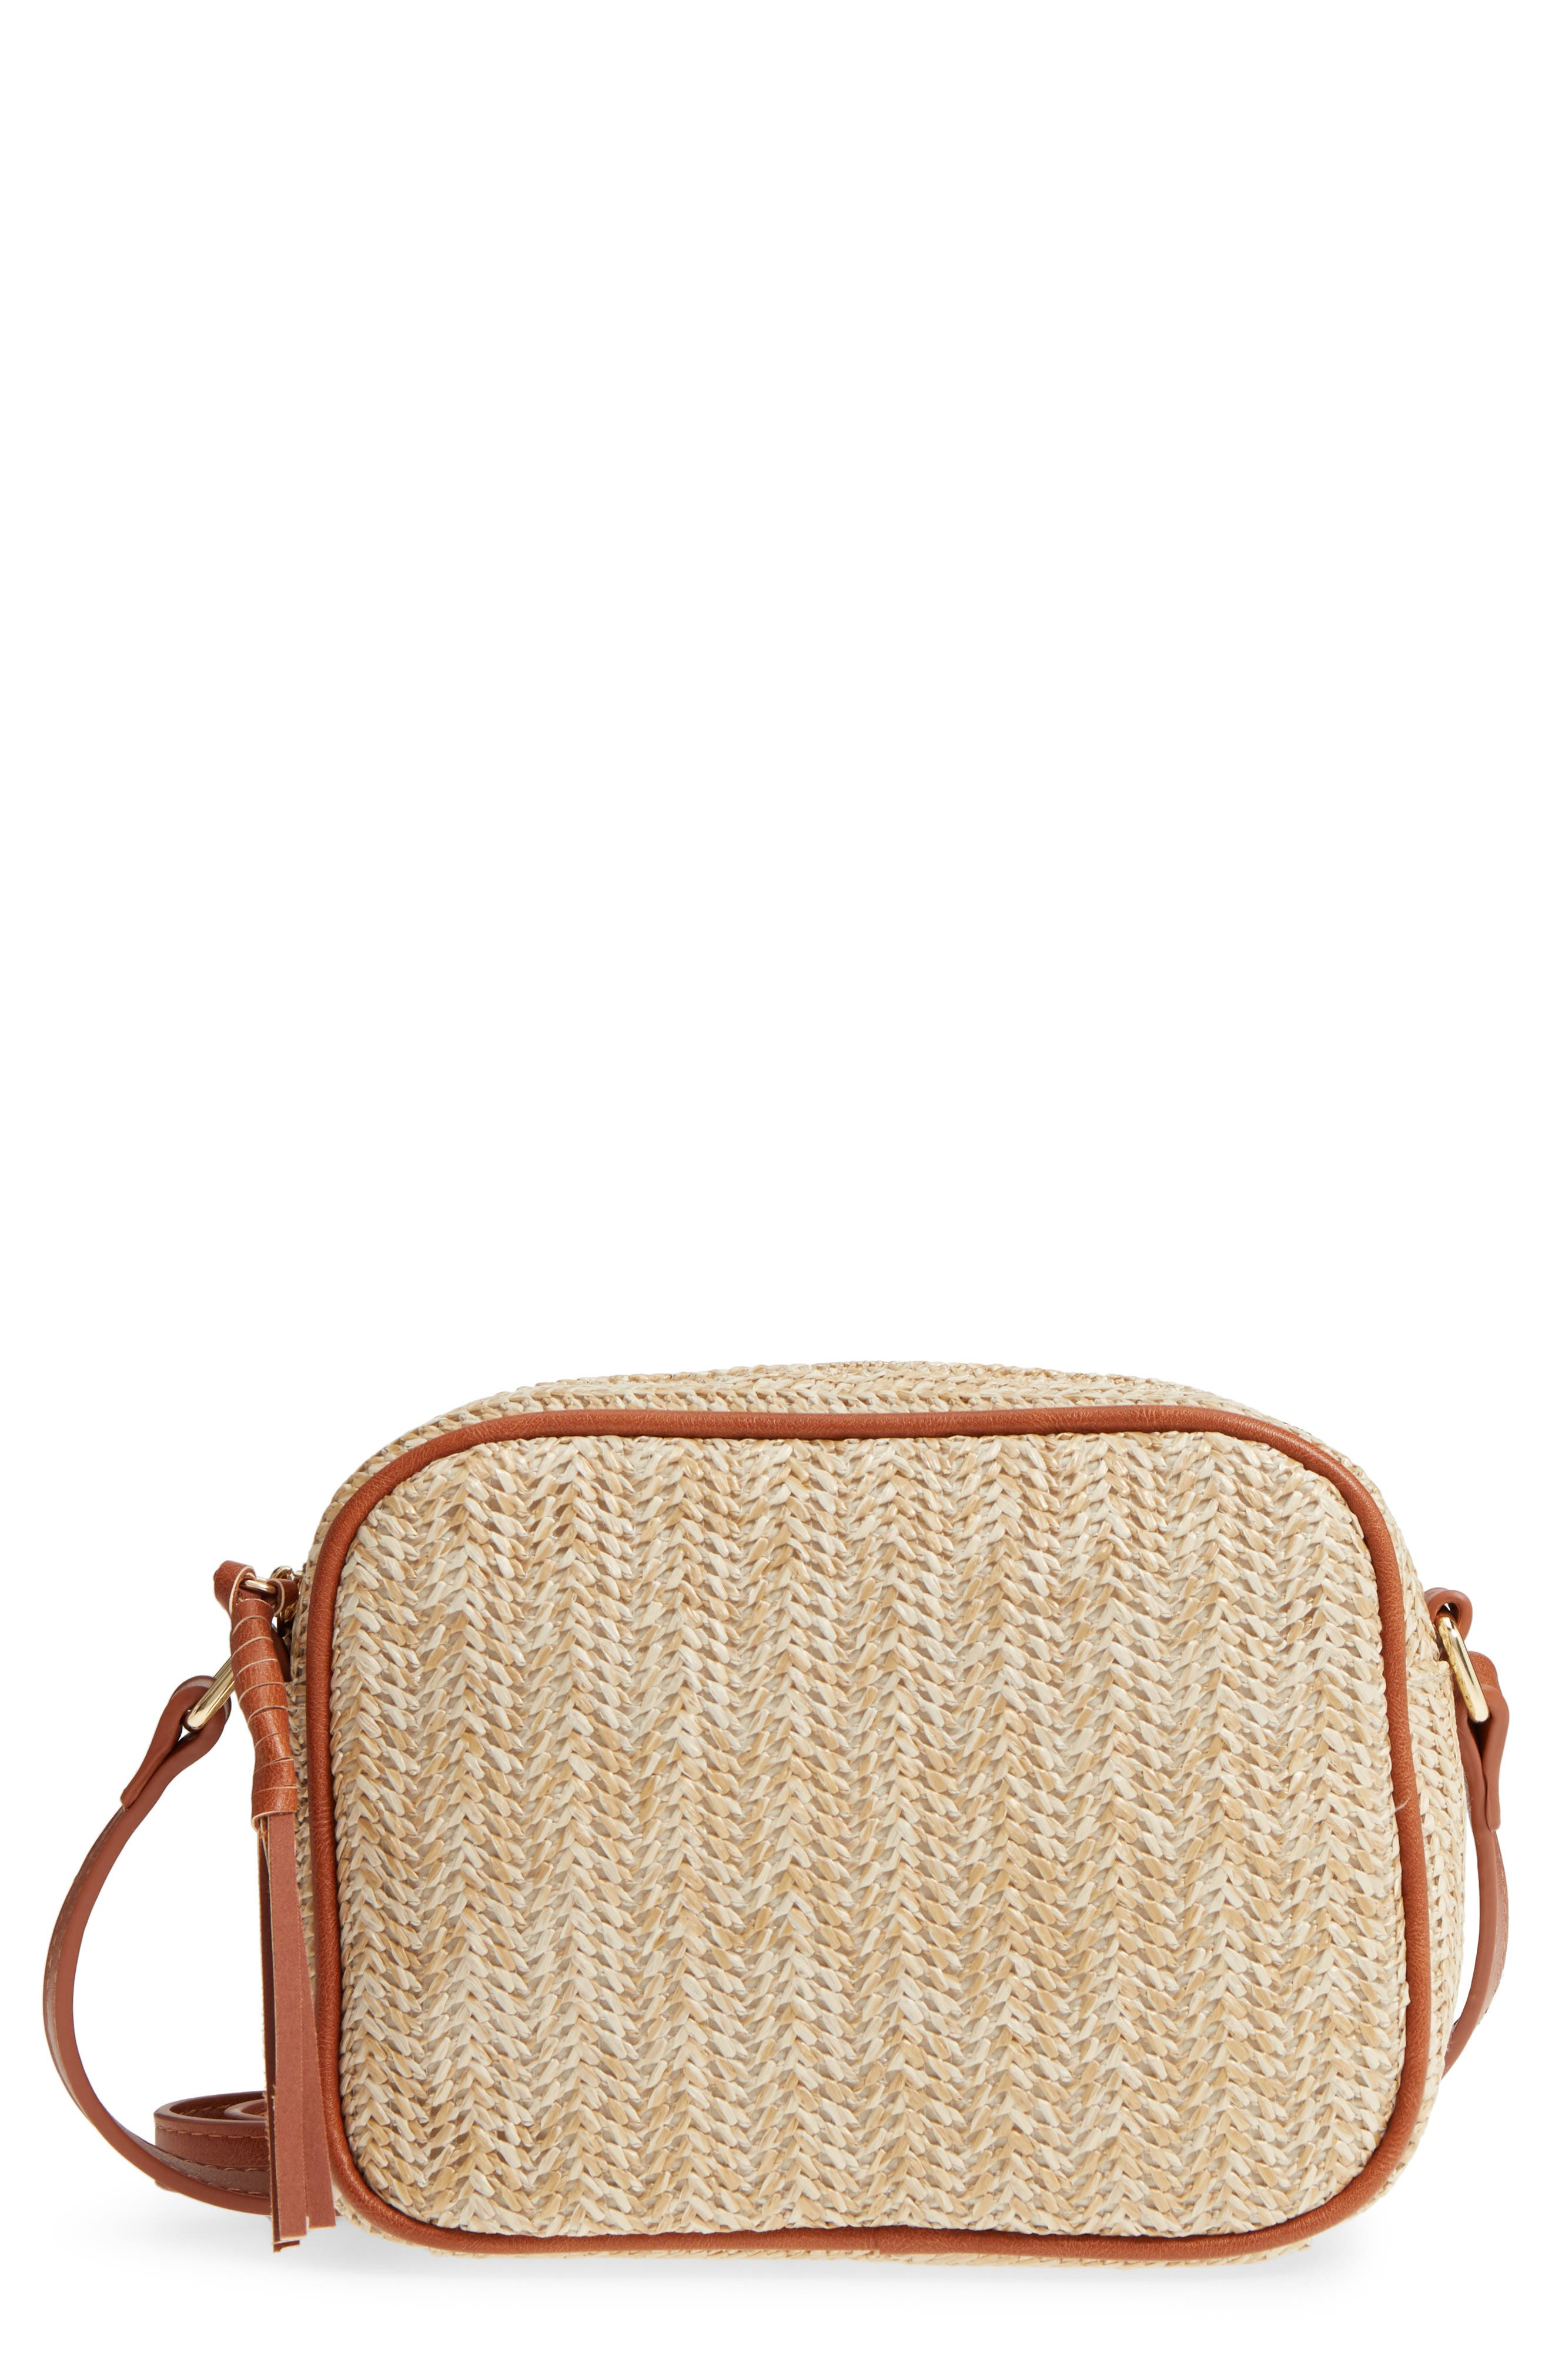 Pipper Faux Leather Camera Bag,                         Main,                         color, 250